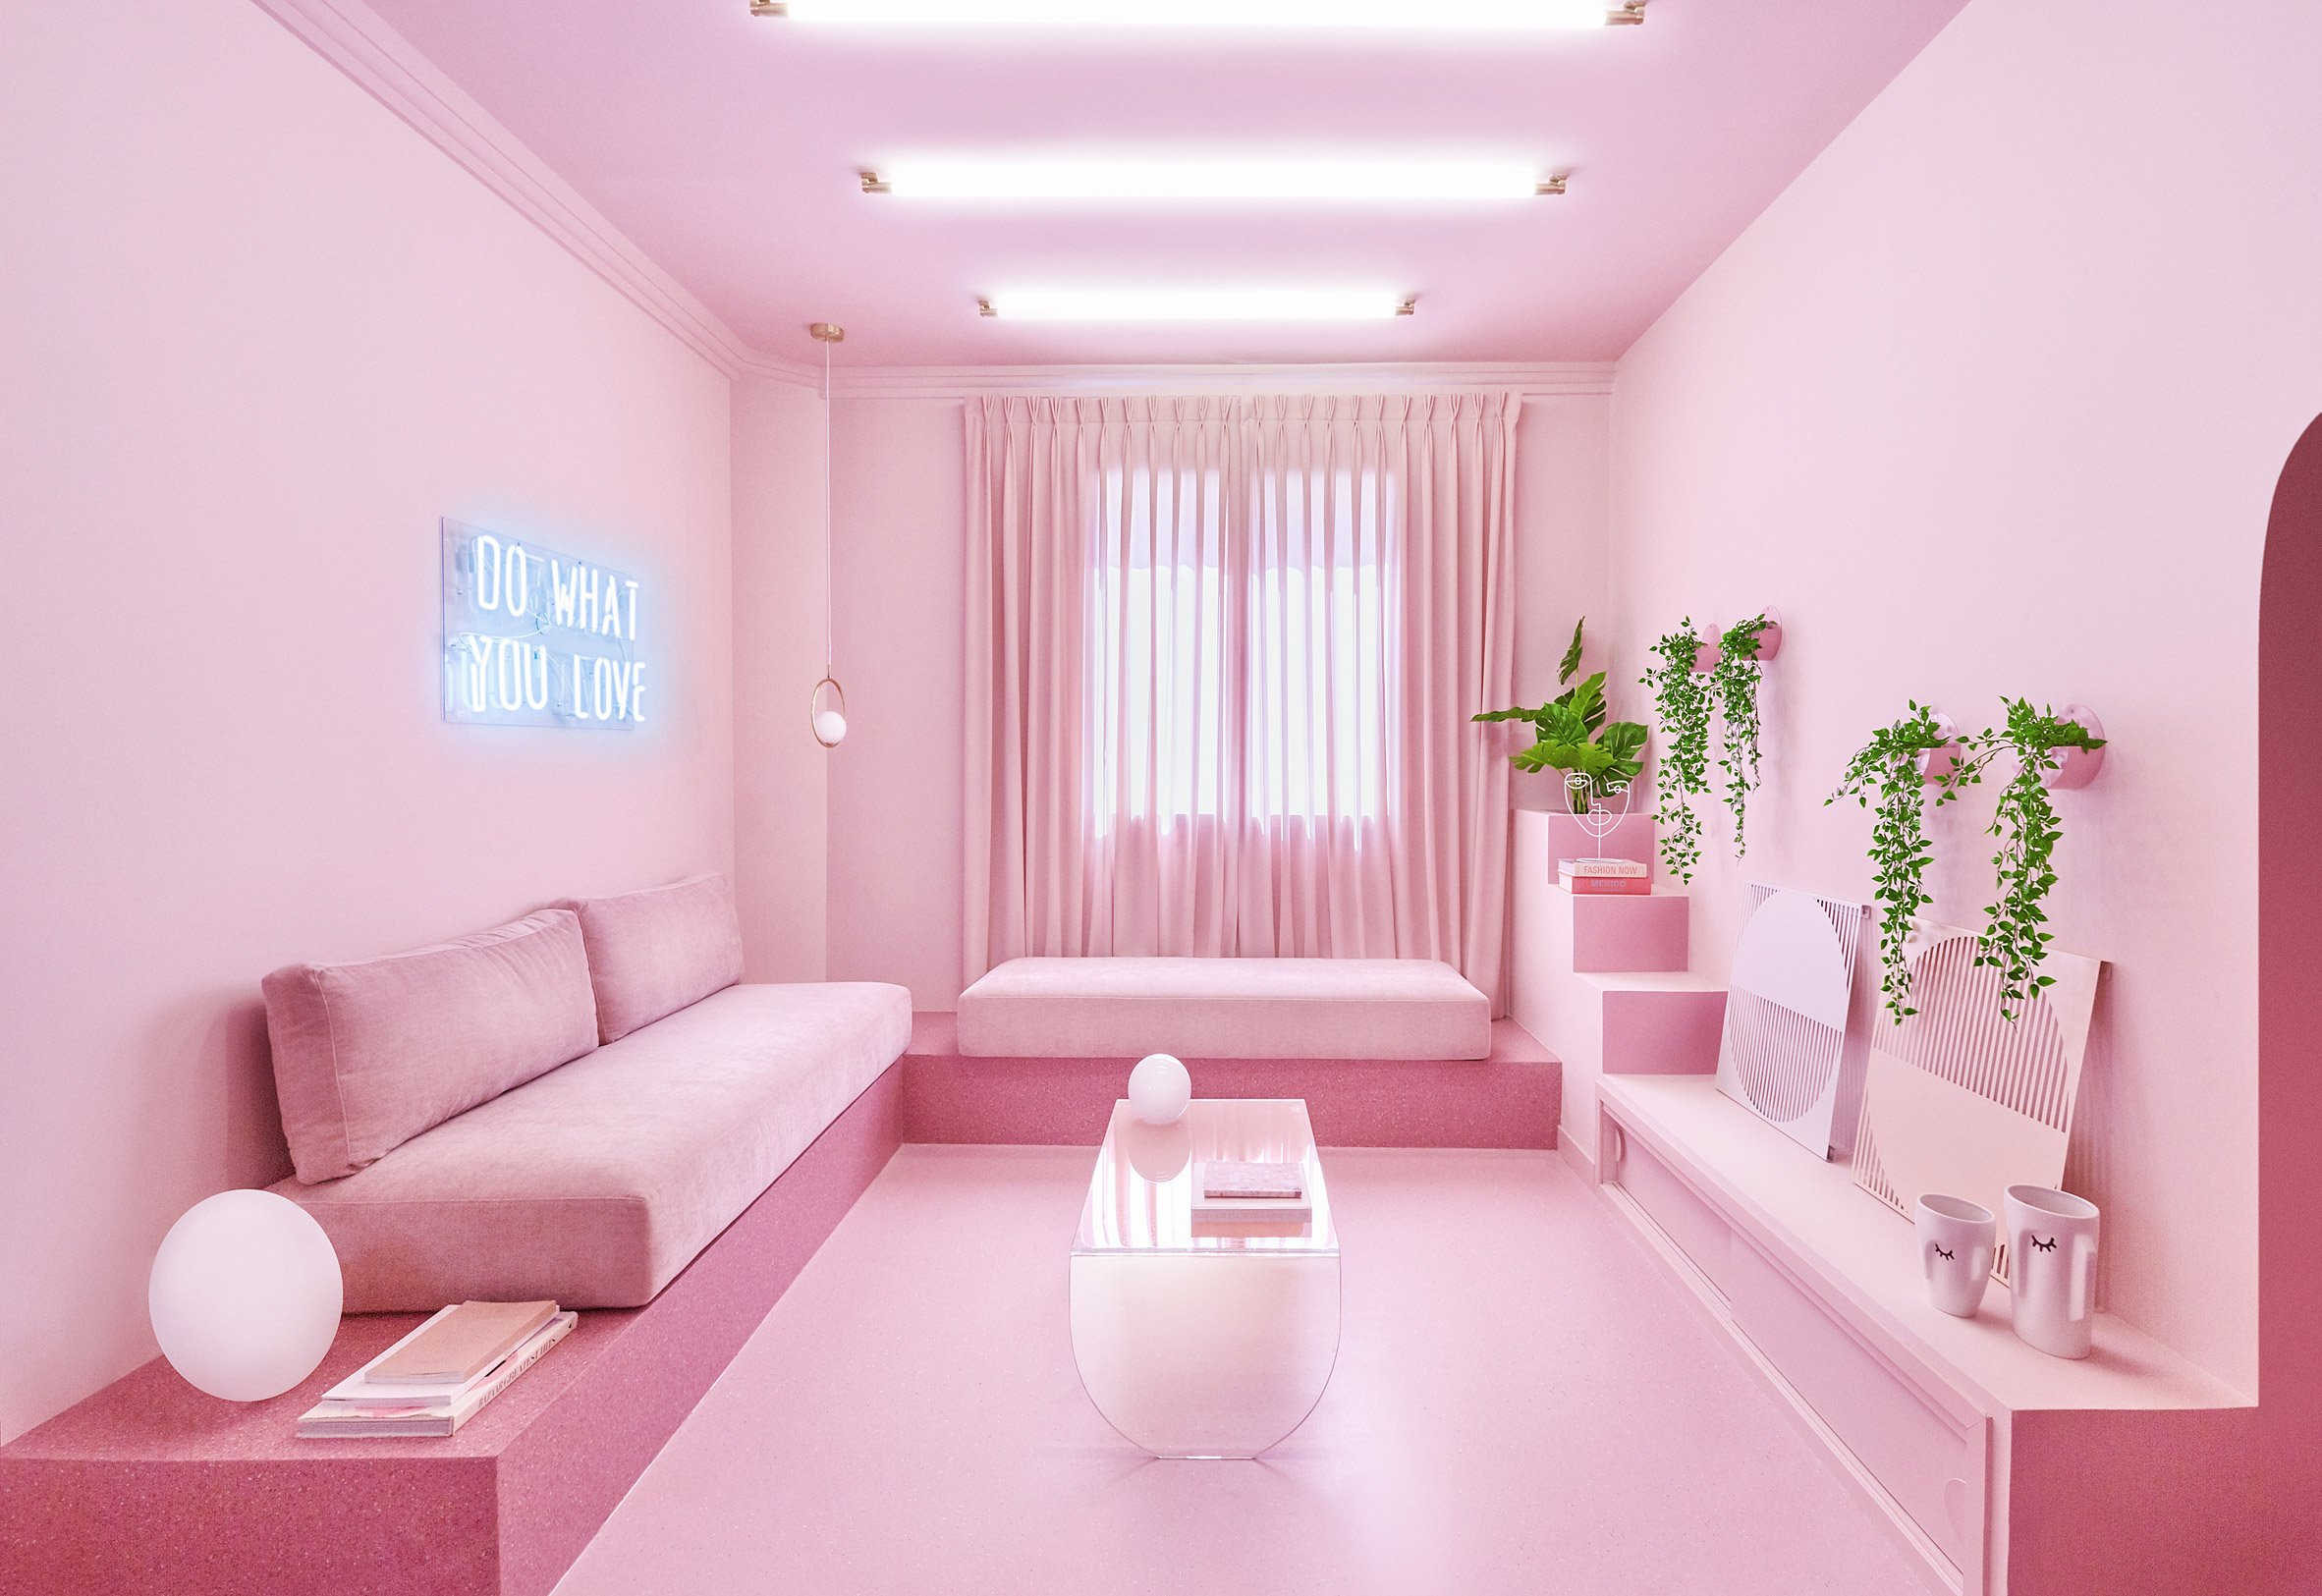 Living room of Minimal Fantasy, a pink apartment in Madrid